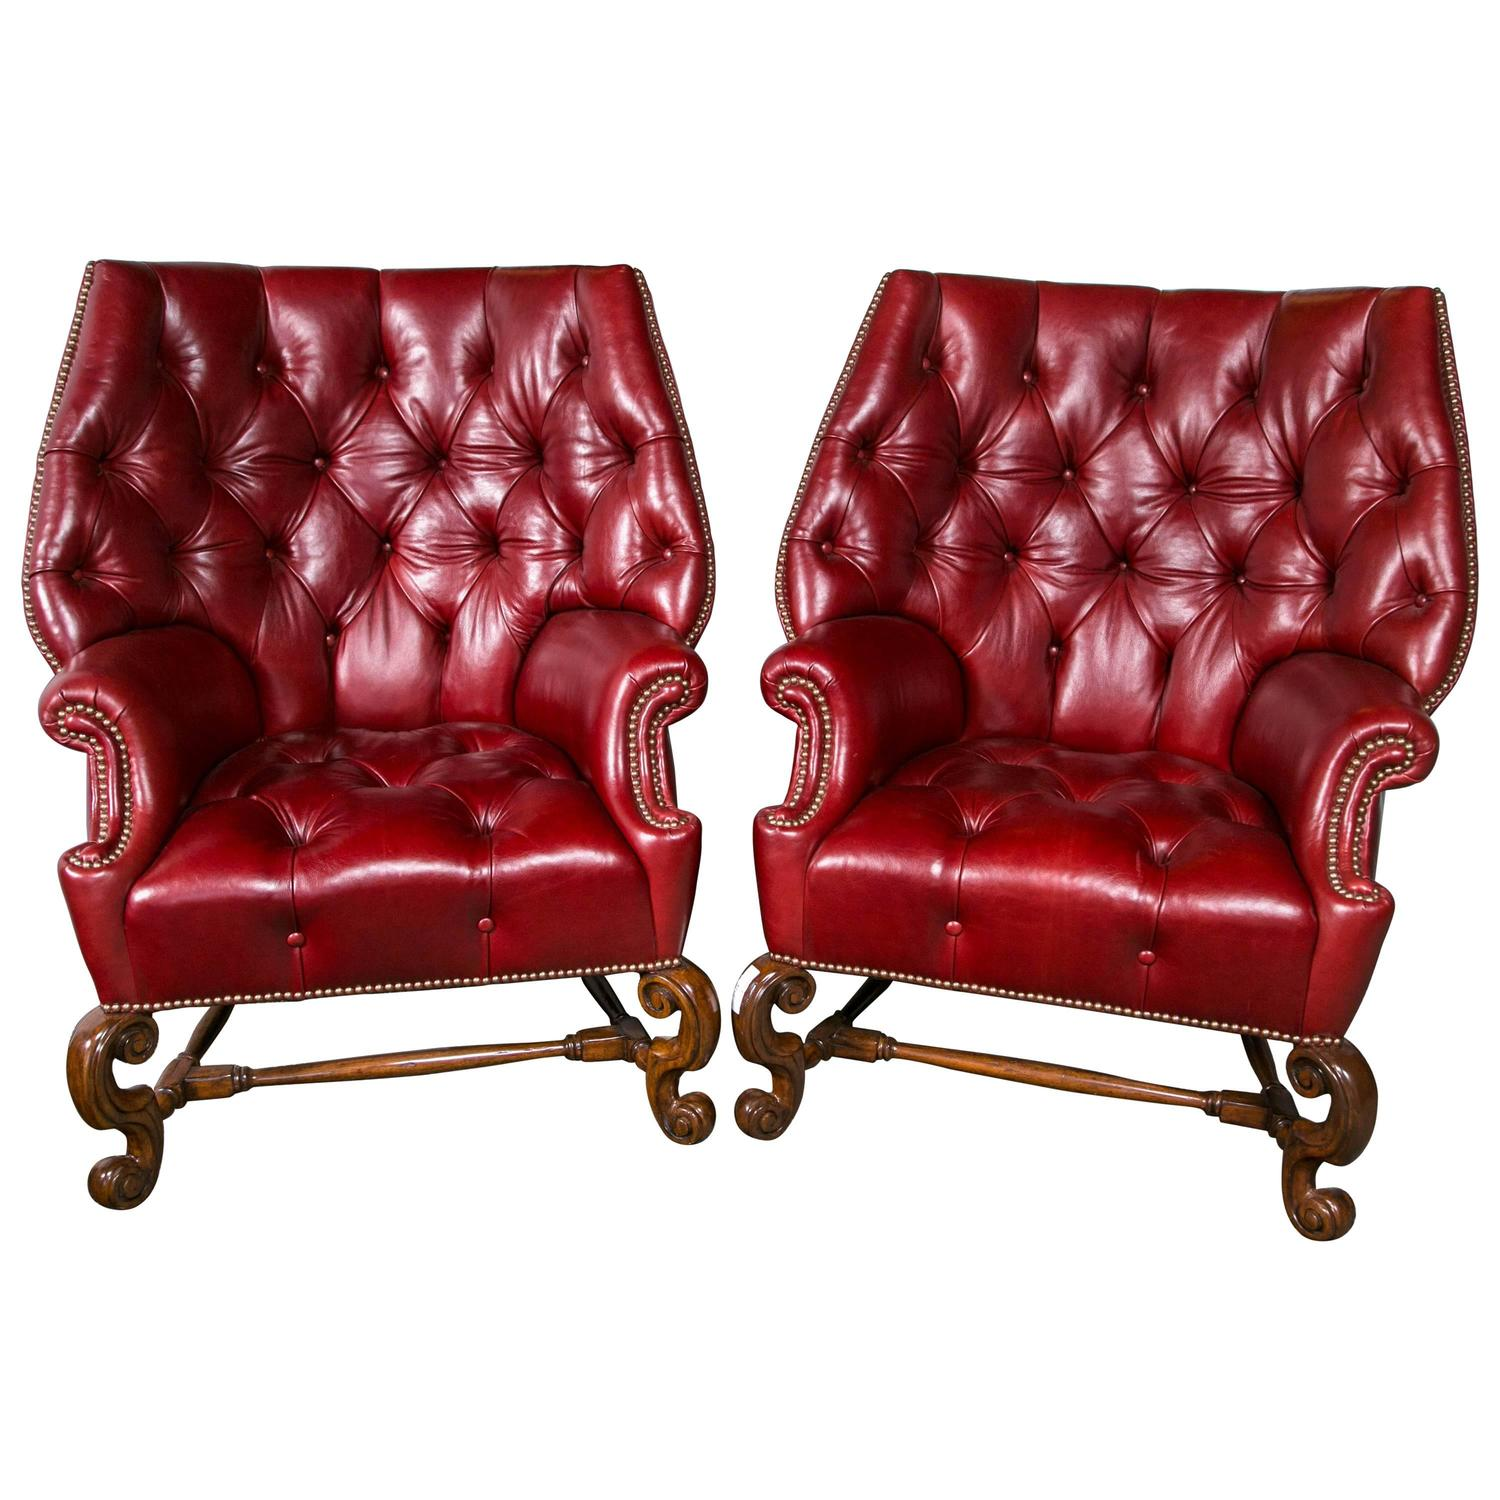 leather wingback chairs beanie walmart pair of oversized tufted for sale